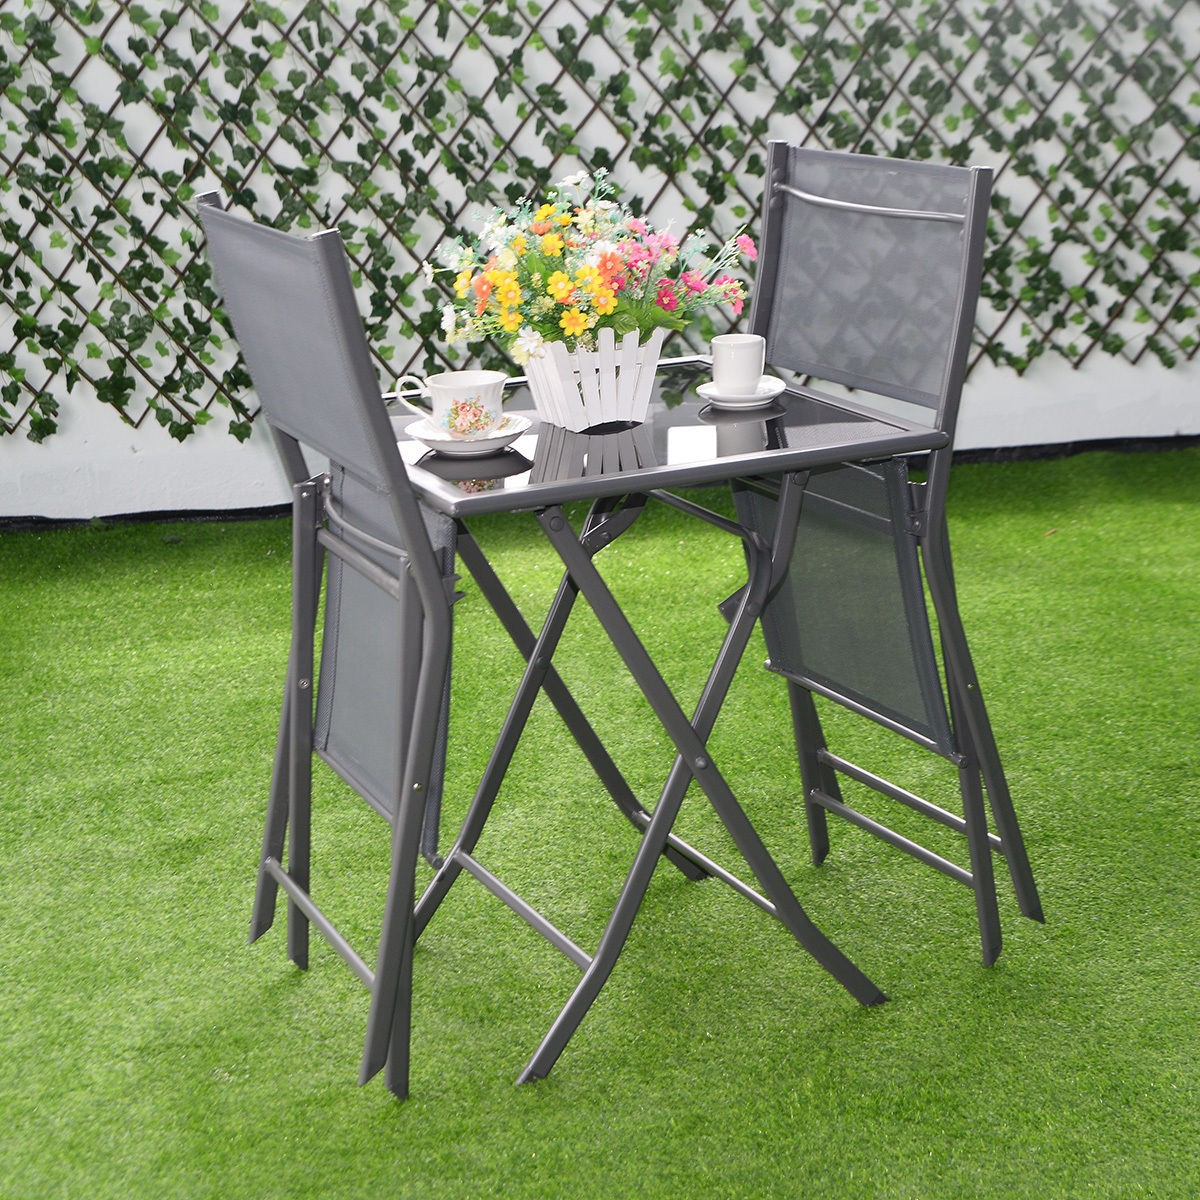 3pcs bistro set garden backyard table chairs outdoor patio furniture folding hot ebay. Black Bedroom Furniture Sets. Home Design Ideas